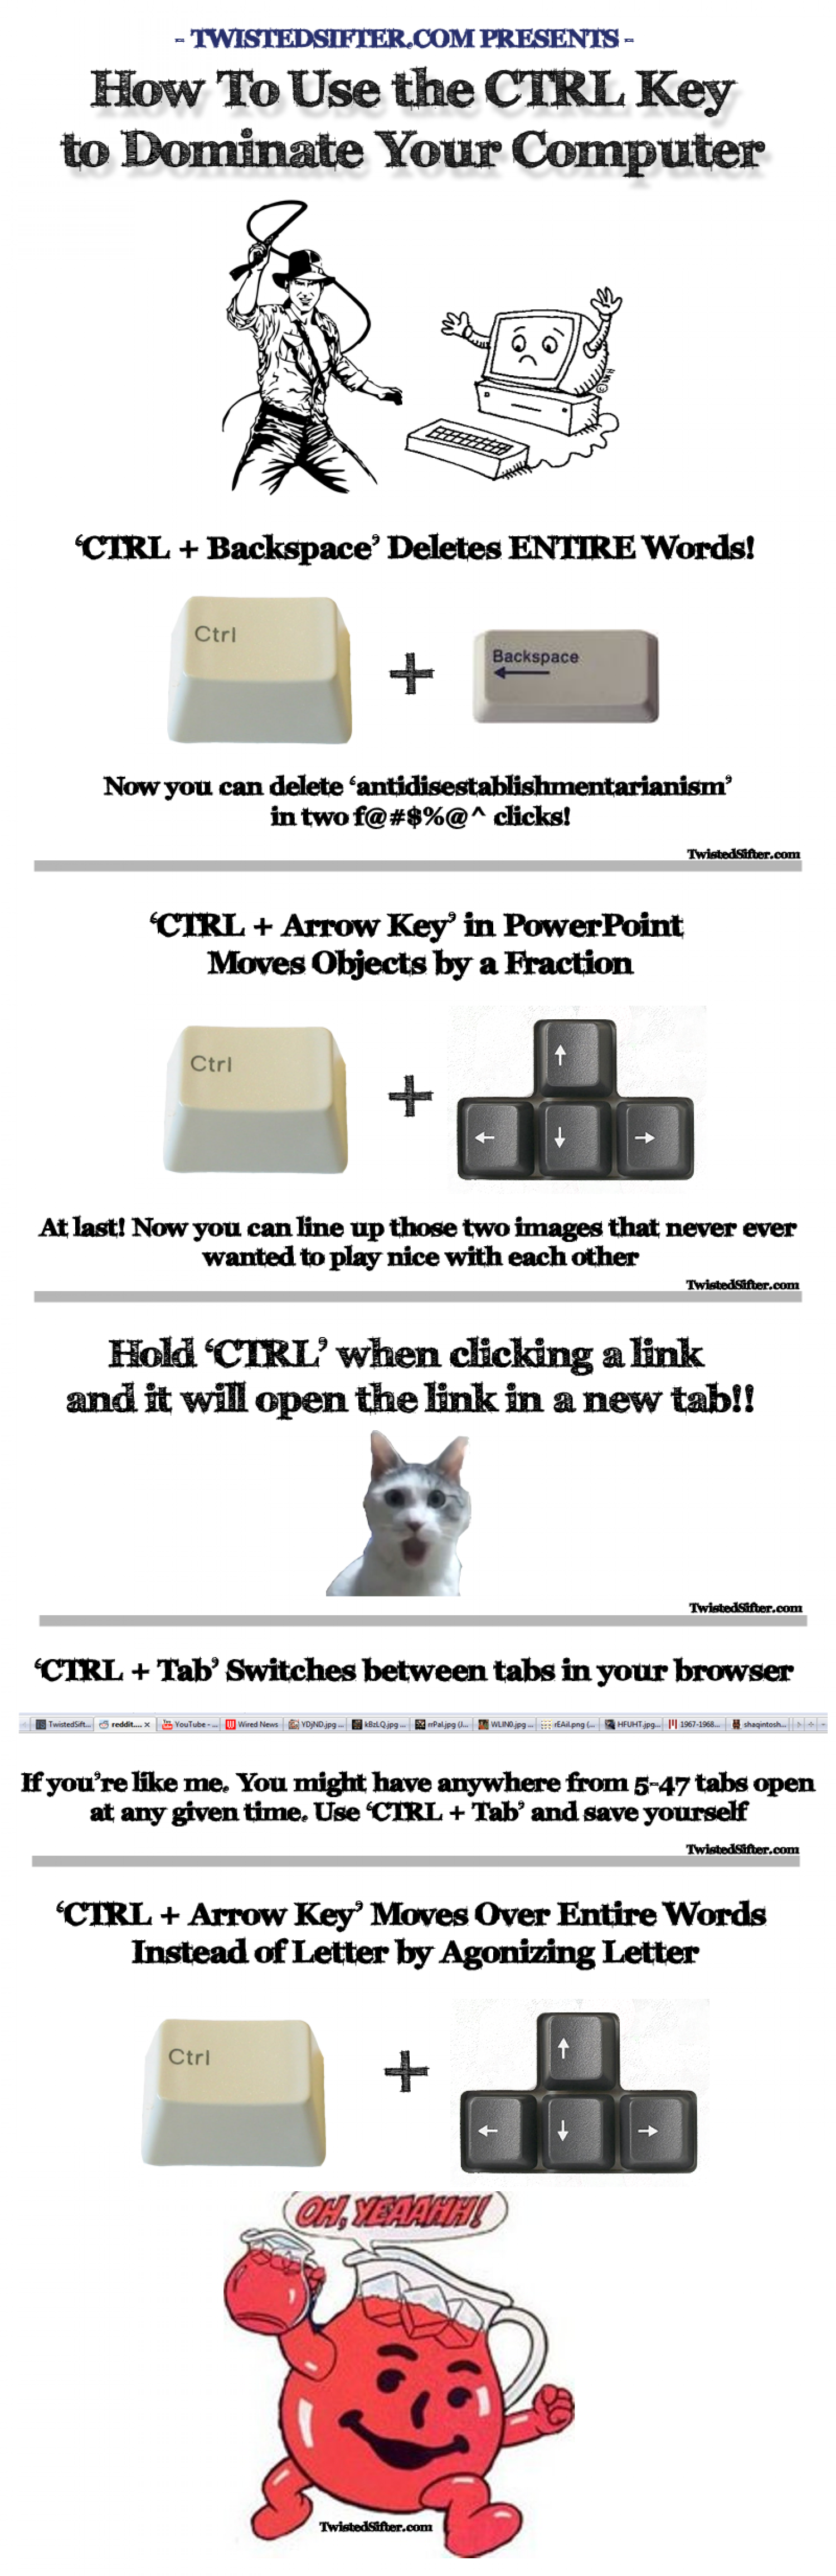 How to Use the CTRL Key to Dominate Your Computer Infographic